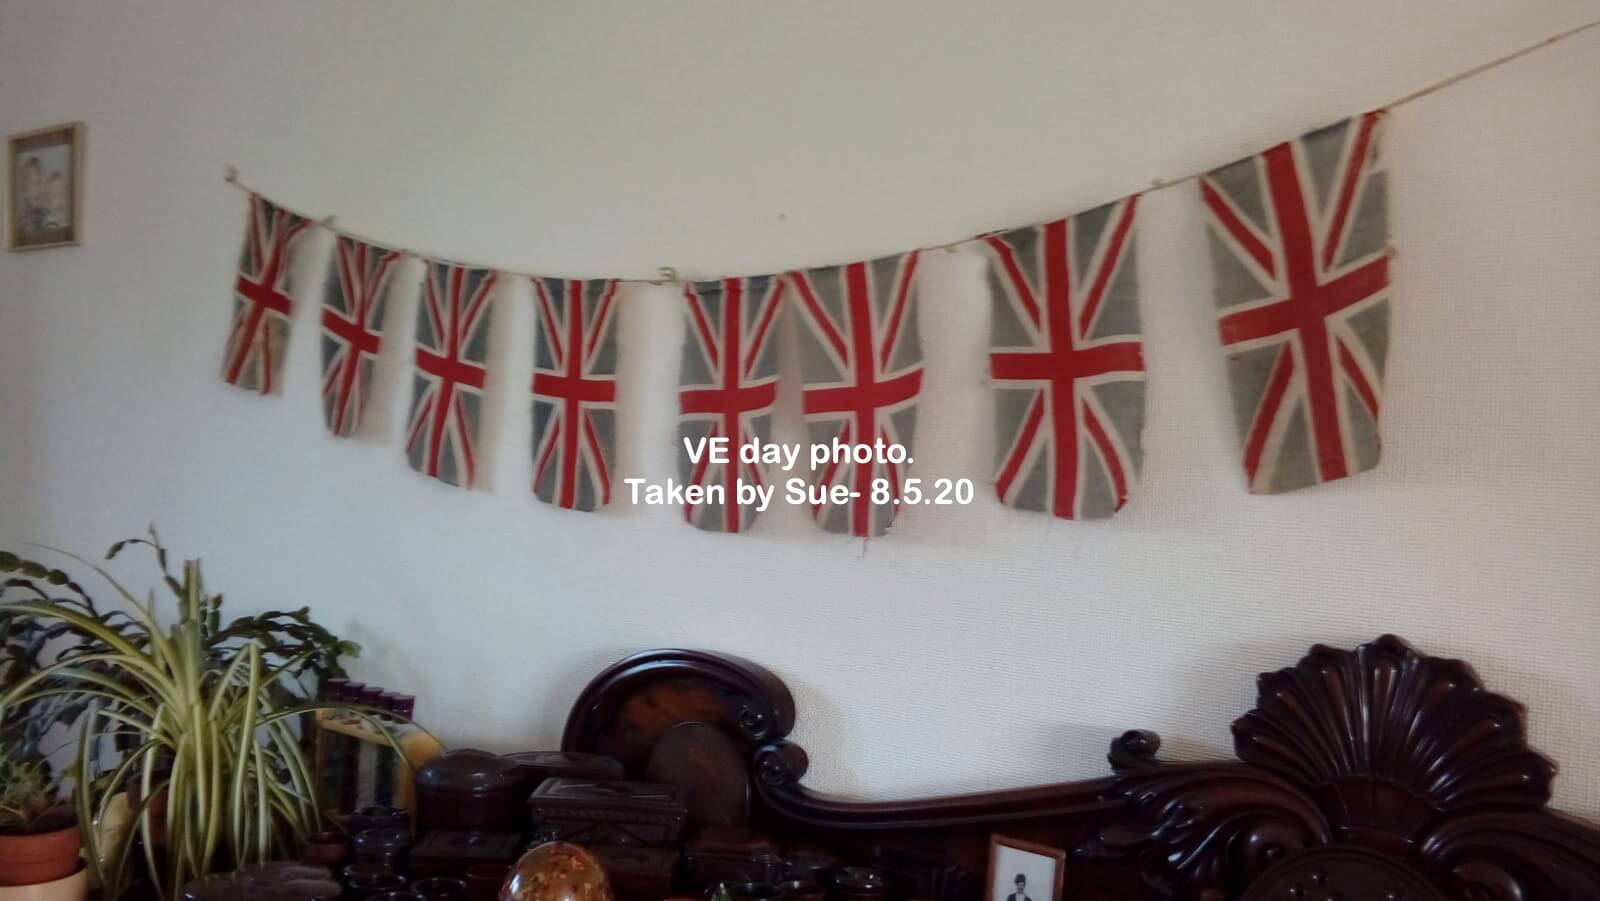 VE day photo. Taken by Sue